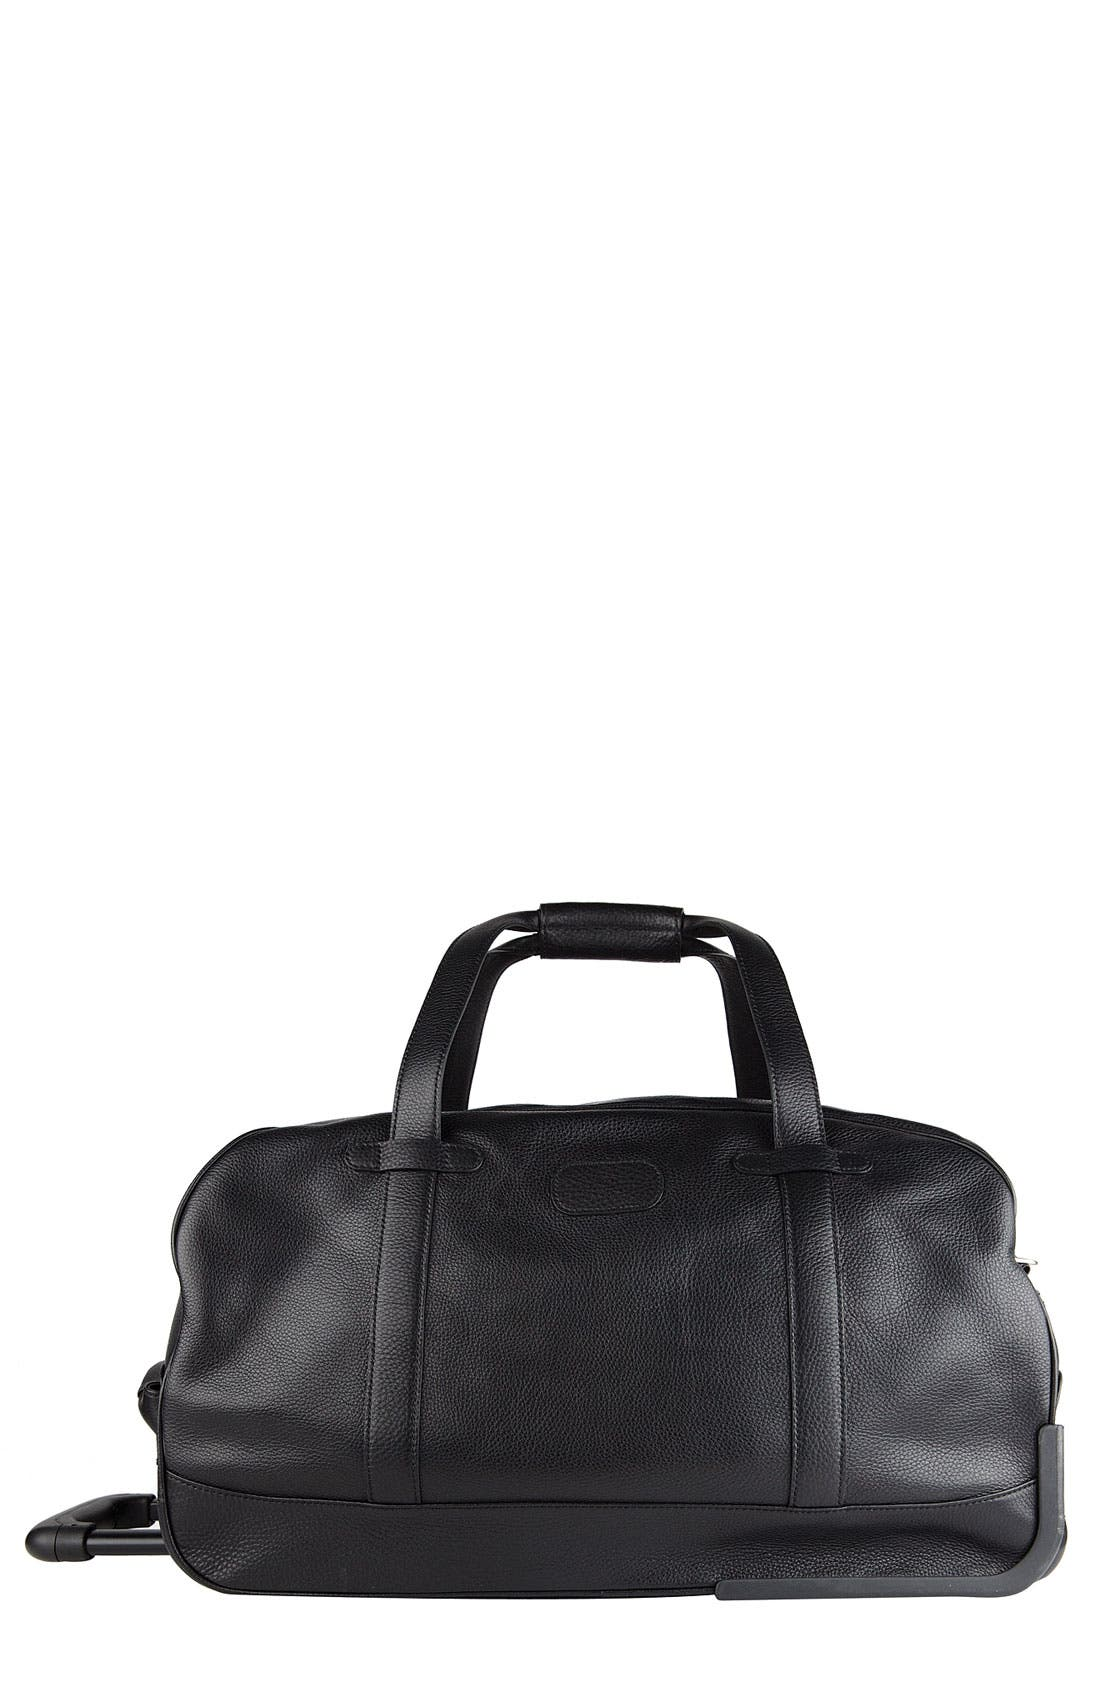 Alternate Image 1 Selected - Bosca 'Tribeca Collection' Wheeled Duffel Bag